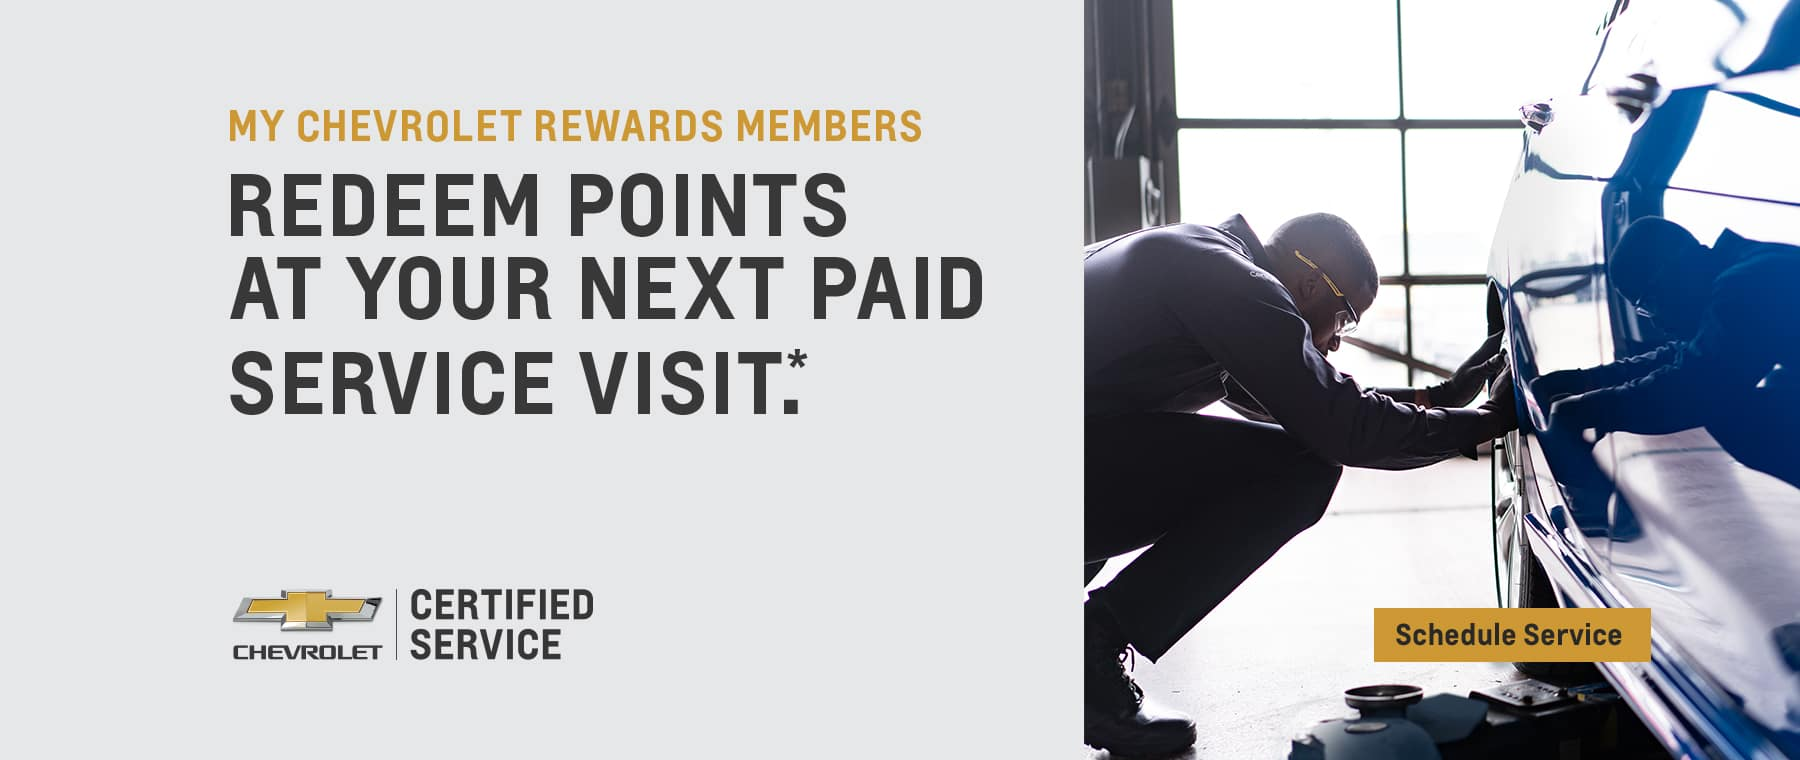 Redeem Points at your next paid service visit